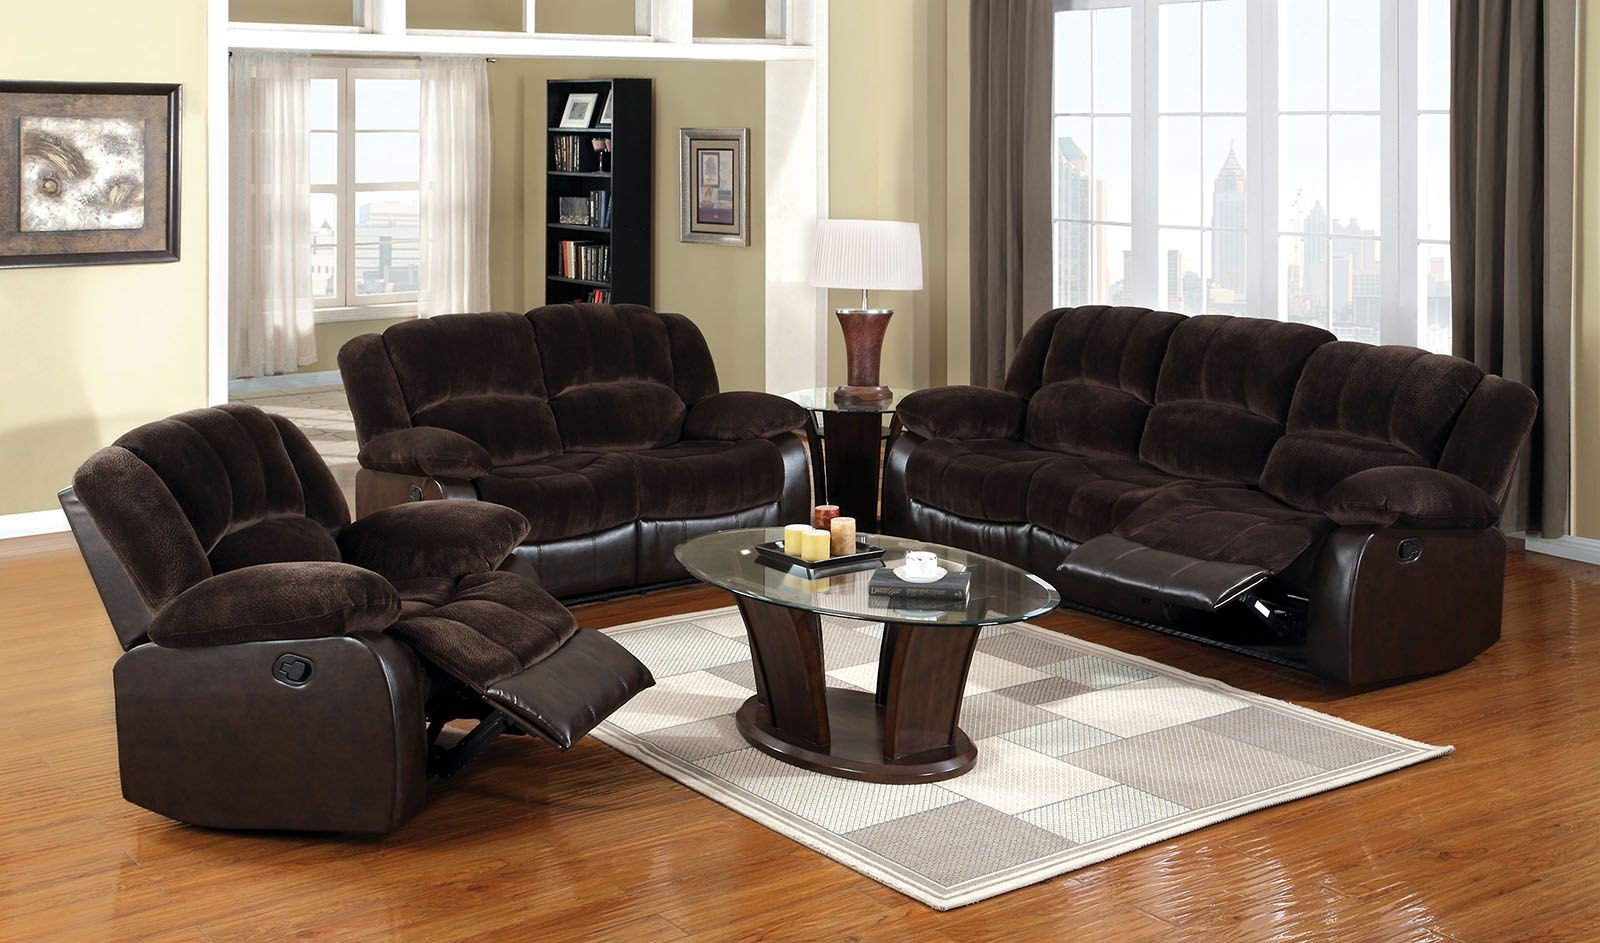 Winslow Rustic Brown Reclining Living Room Set From